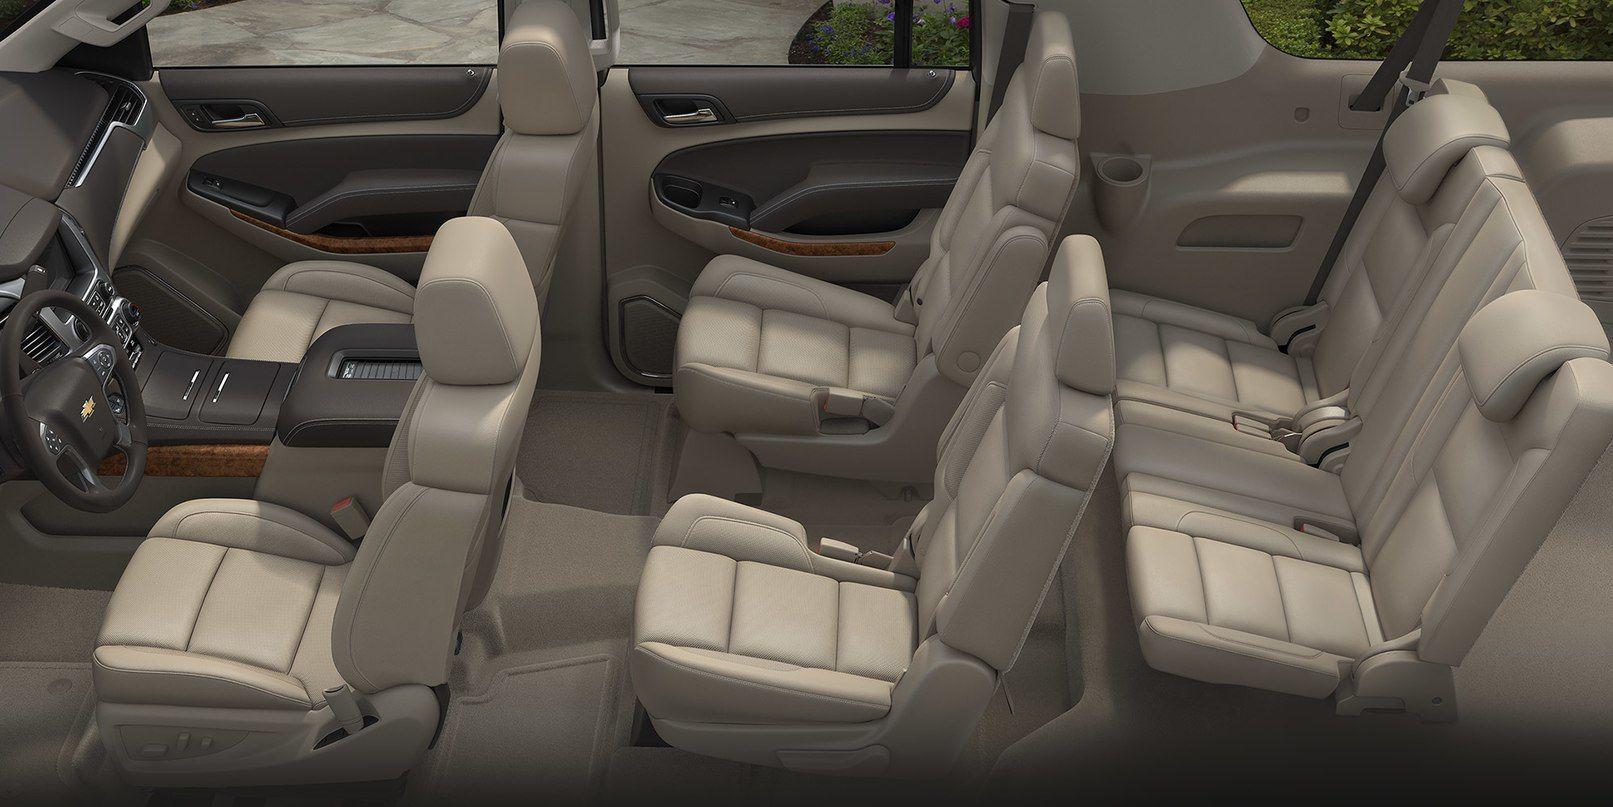 Chevy Suburban Seating Arrangement More At Chevrolet Dealer In